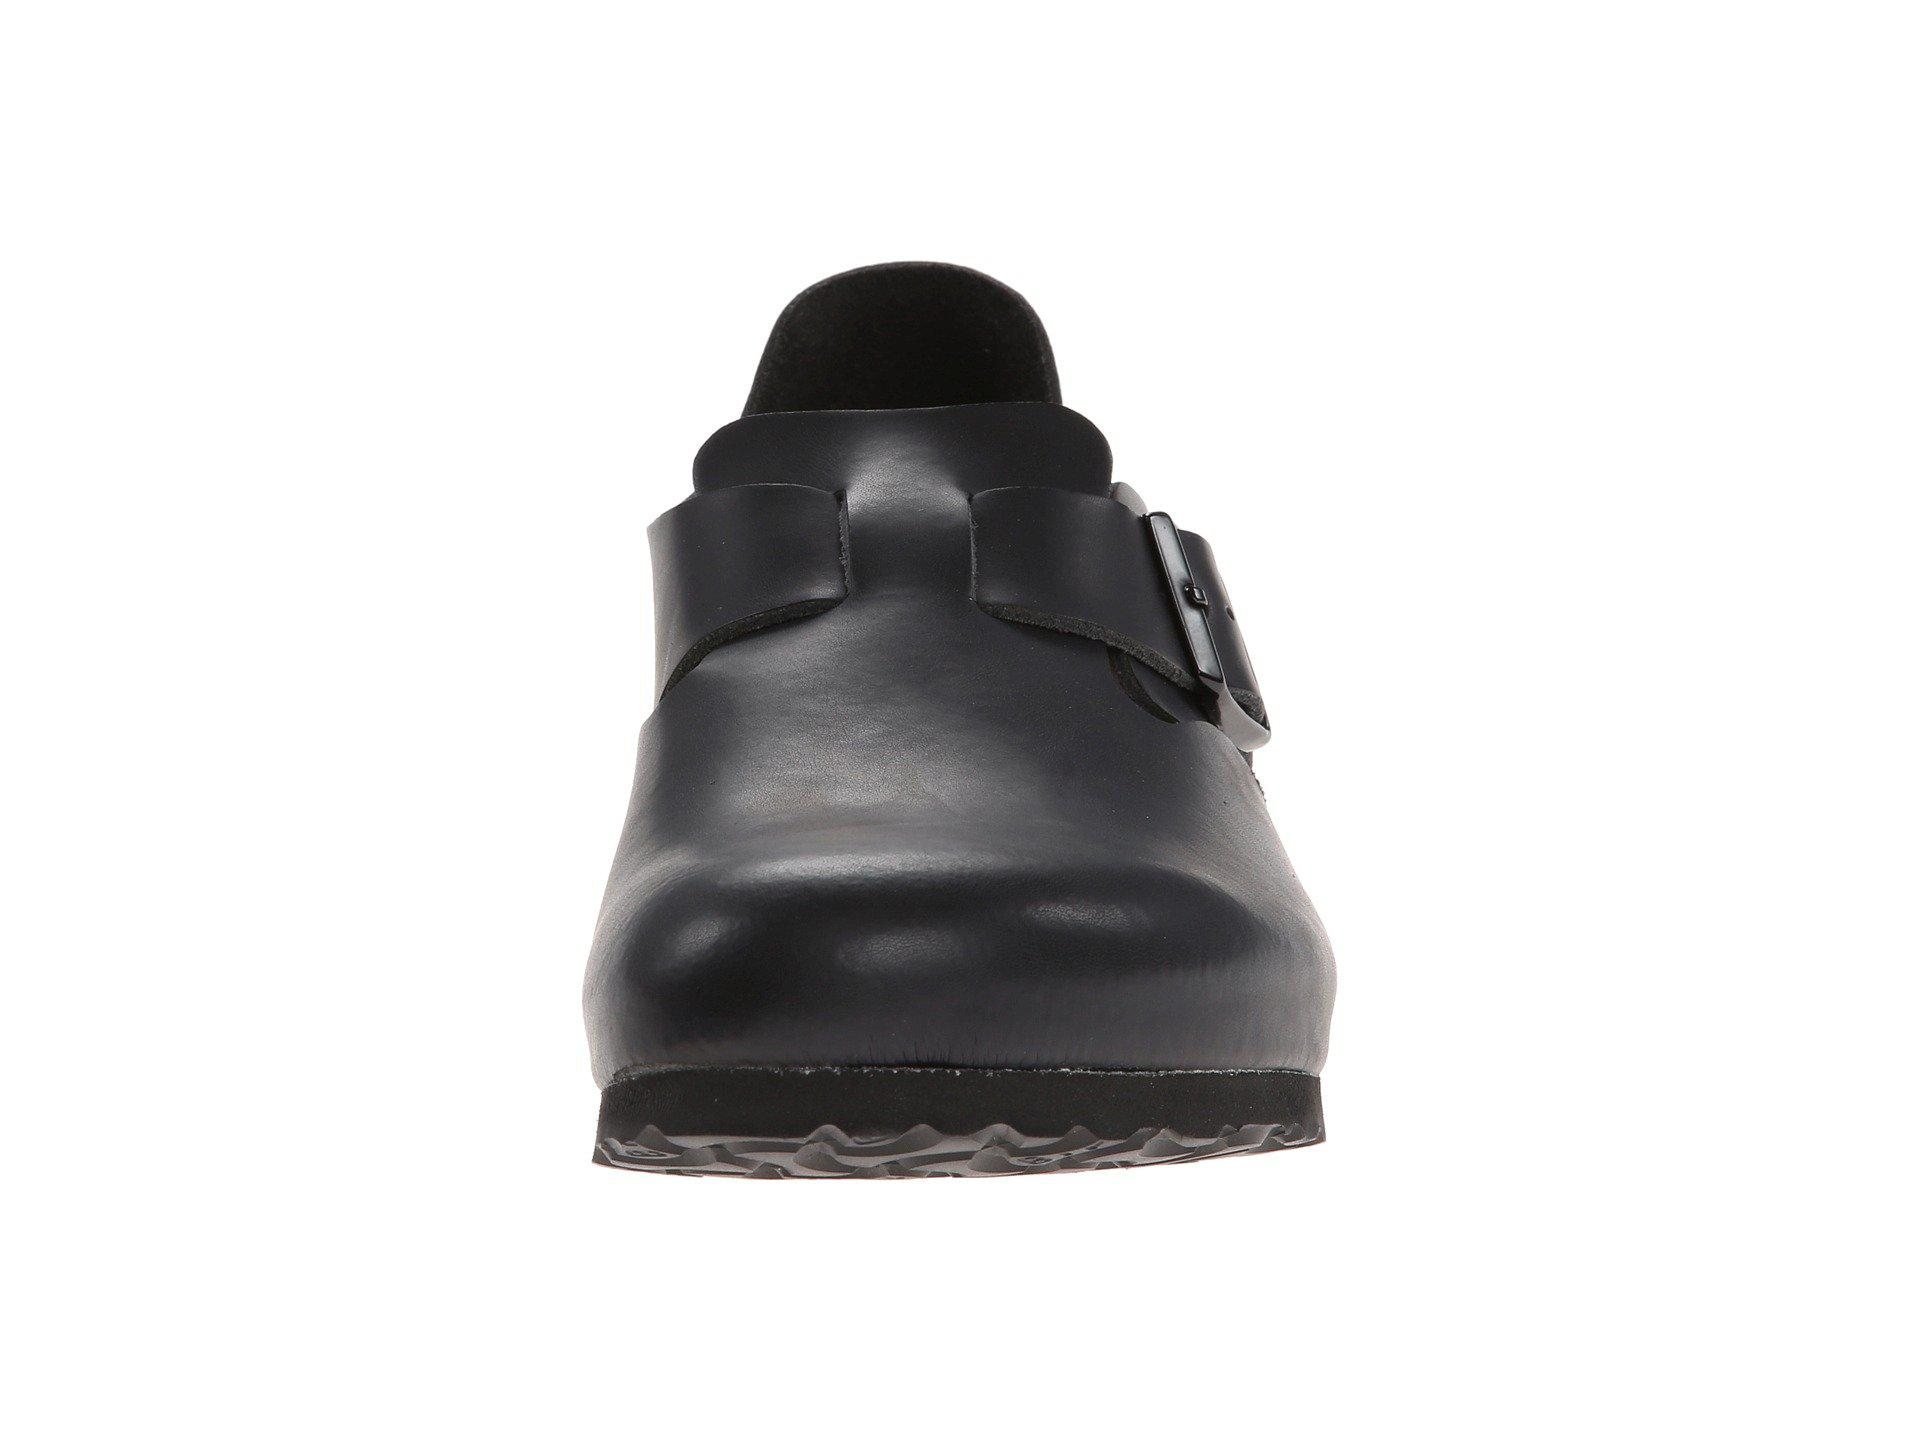 da8000d985d7 Birkenstock - London Soft Footbed (hunter Black Leather) Shoes - Lyst. View  fullscreen